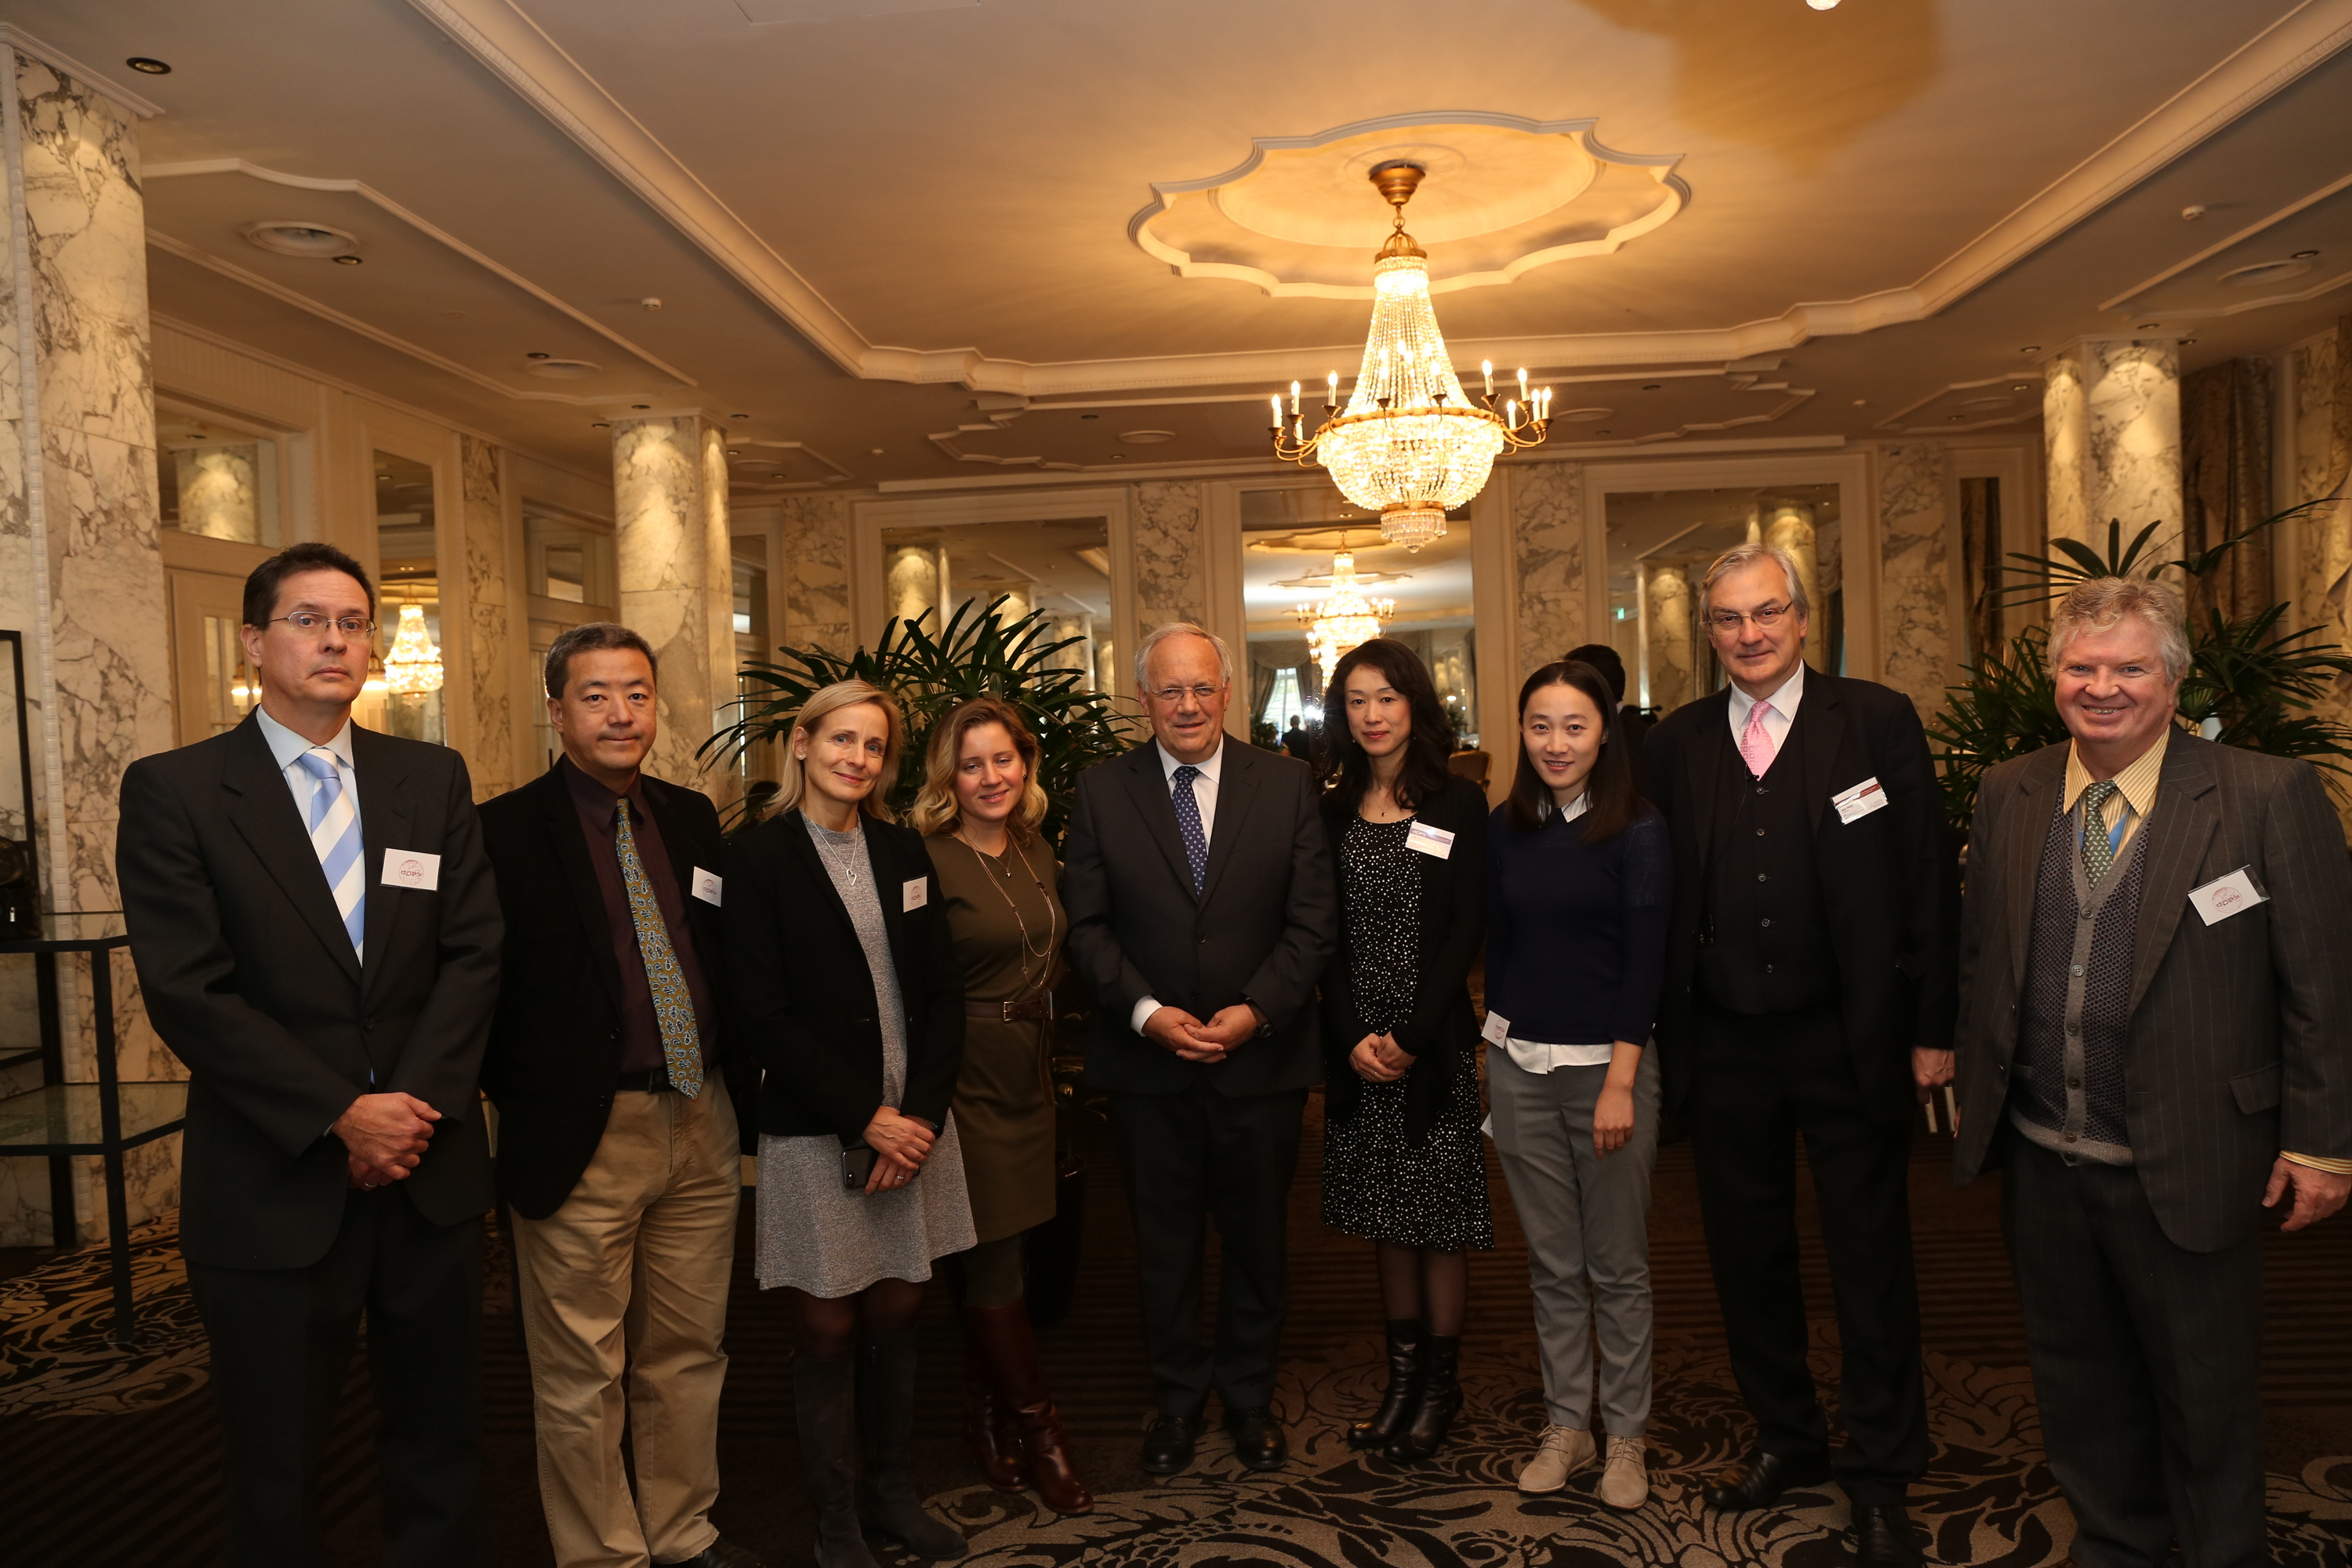 President of the Swiss Confederation Johann Schneider-Ammann with members of the APES Committee during the annual press conference and luncheon at the Schweizerhof in Bern on 27 October.